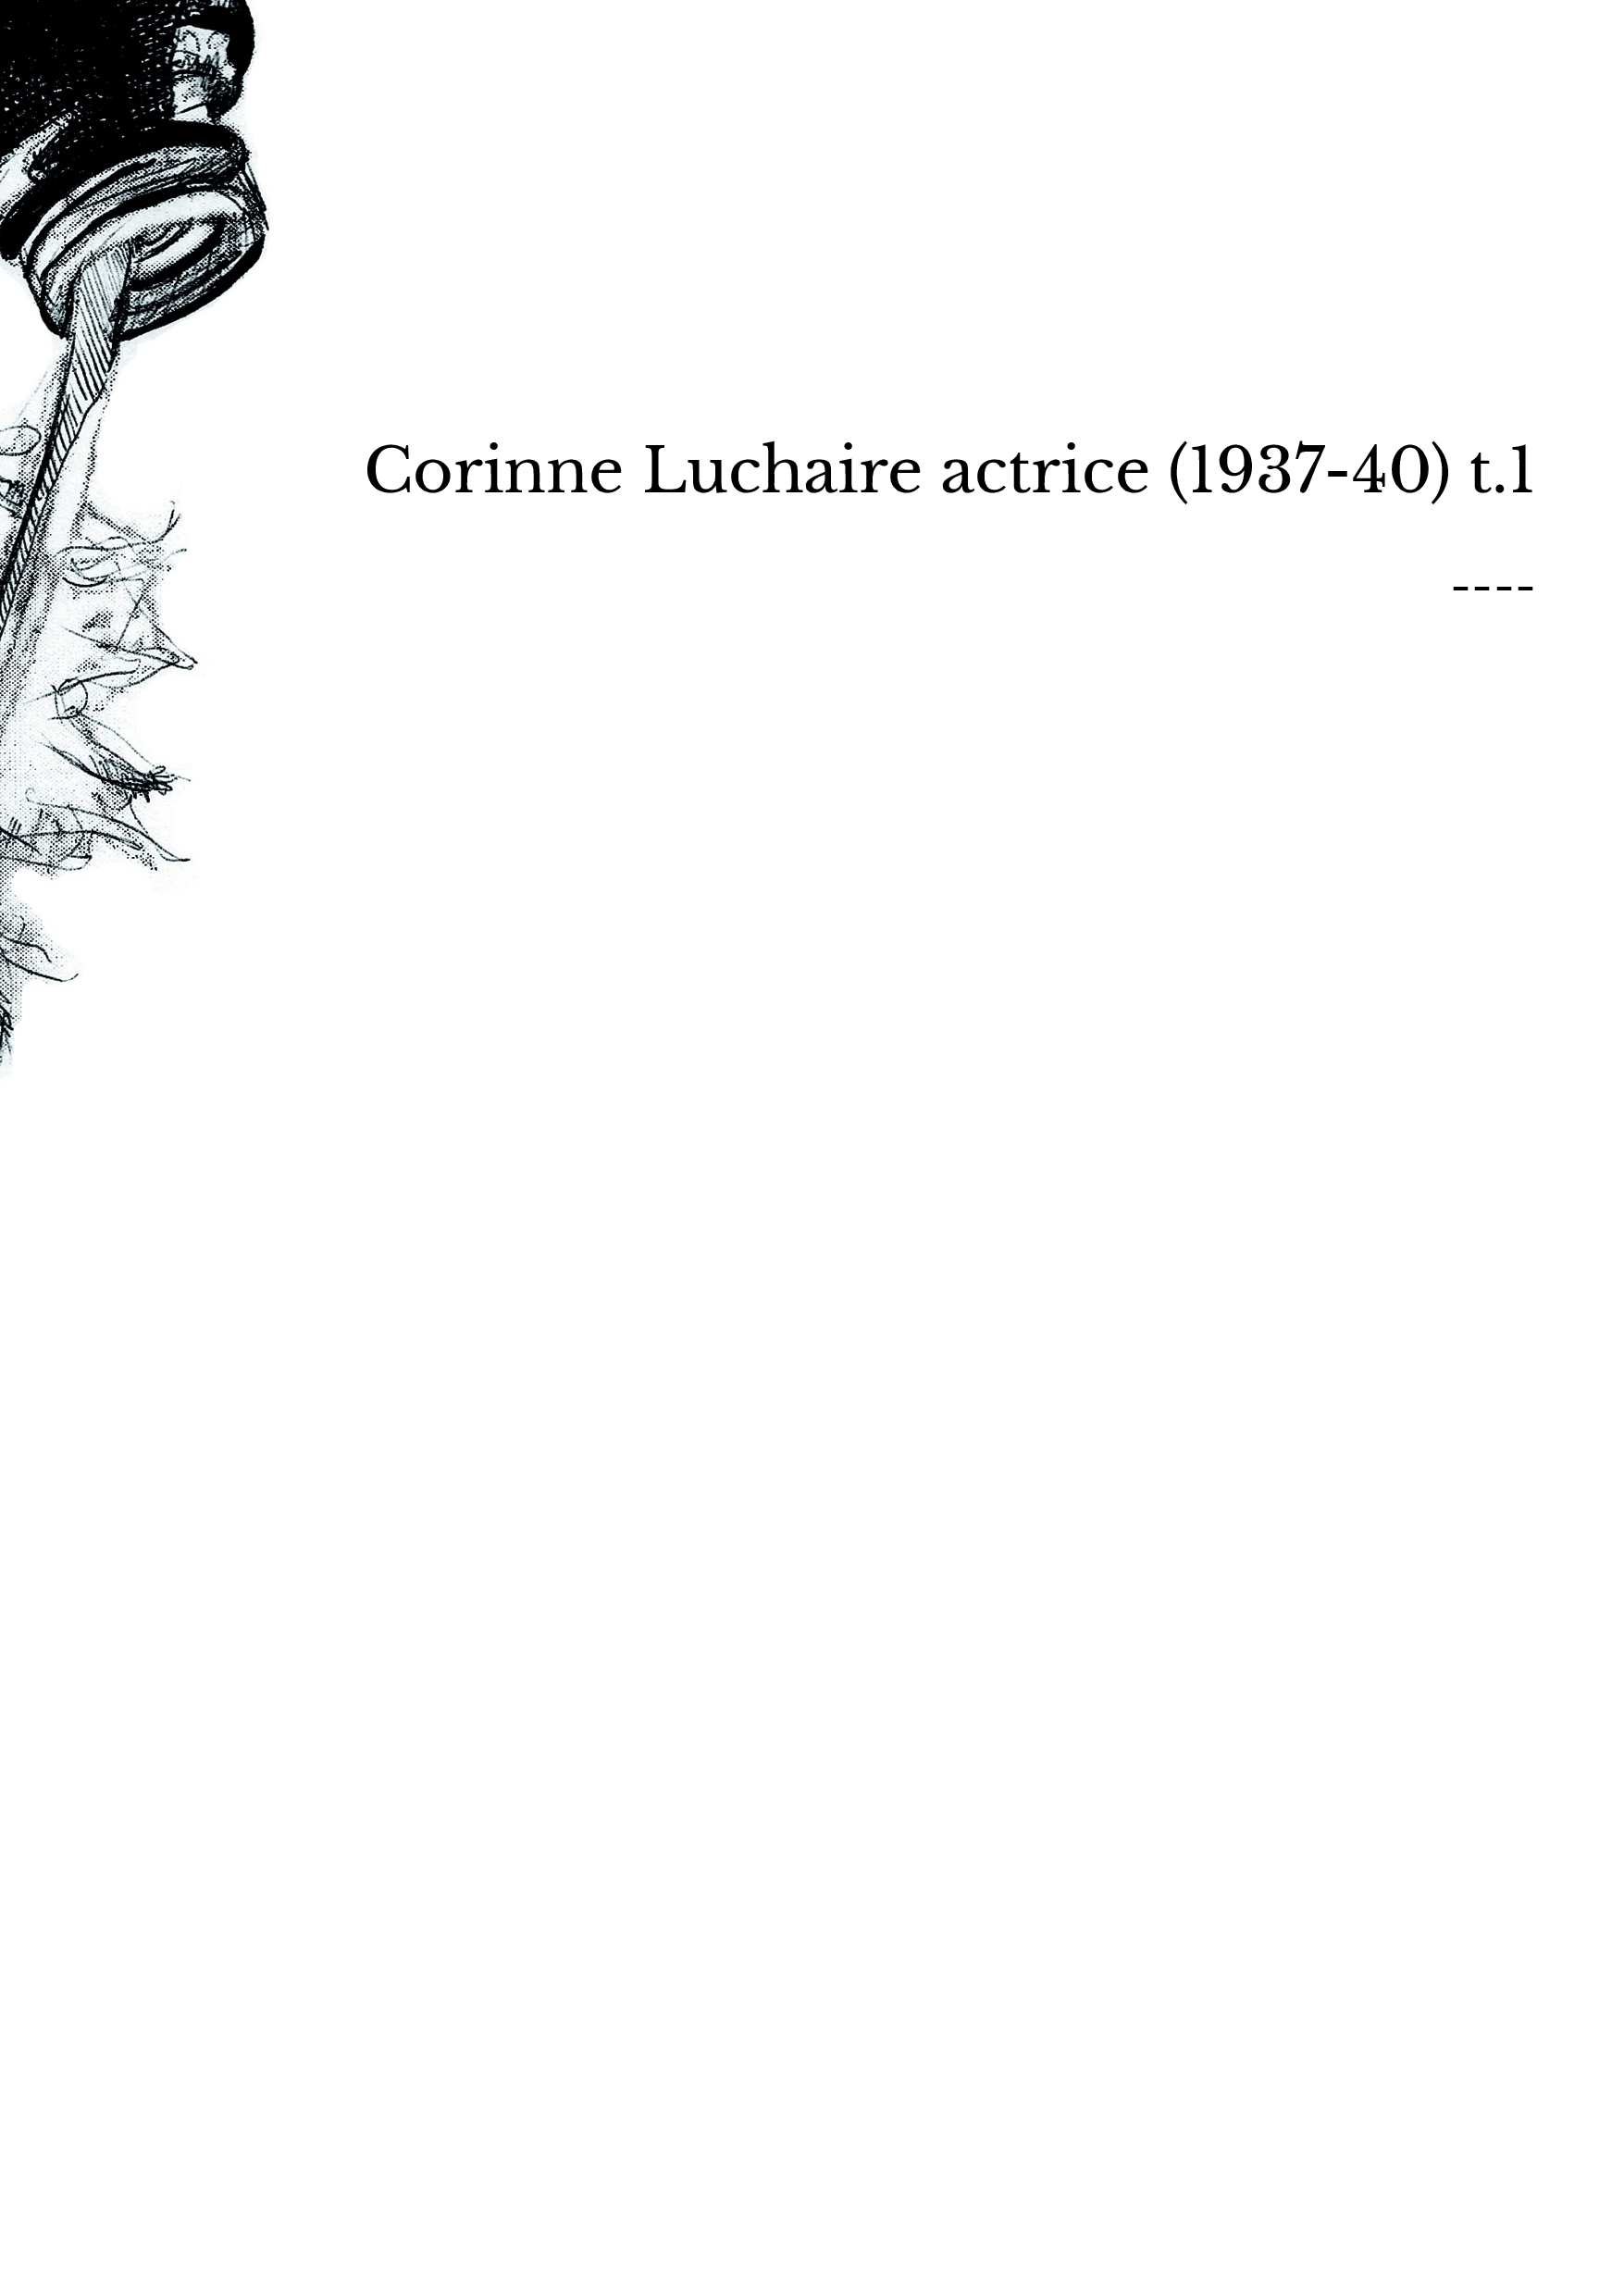 Corinne Luchaire actrice (1937-40) t.1